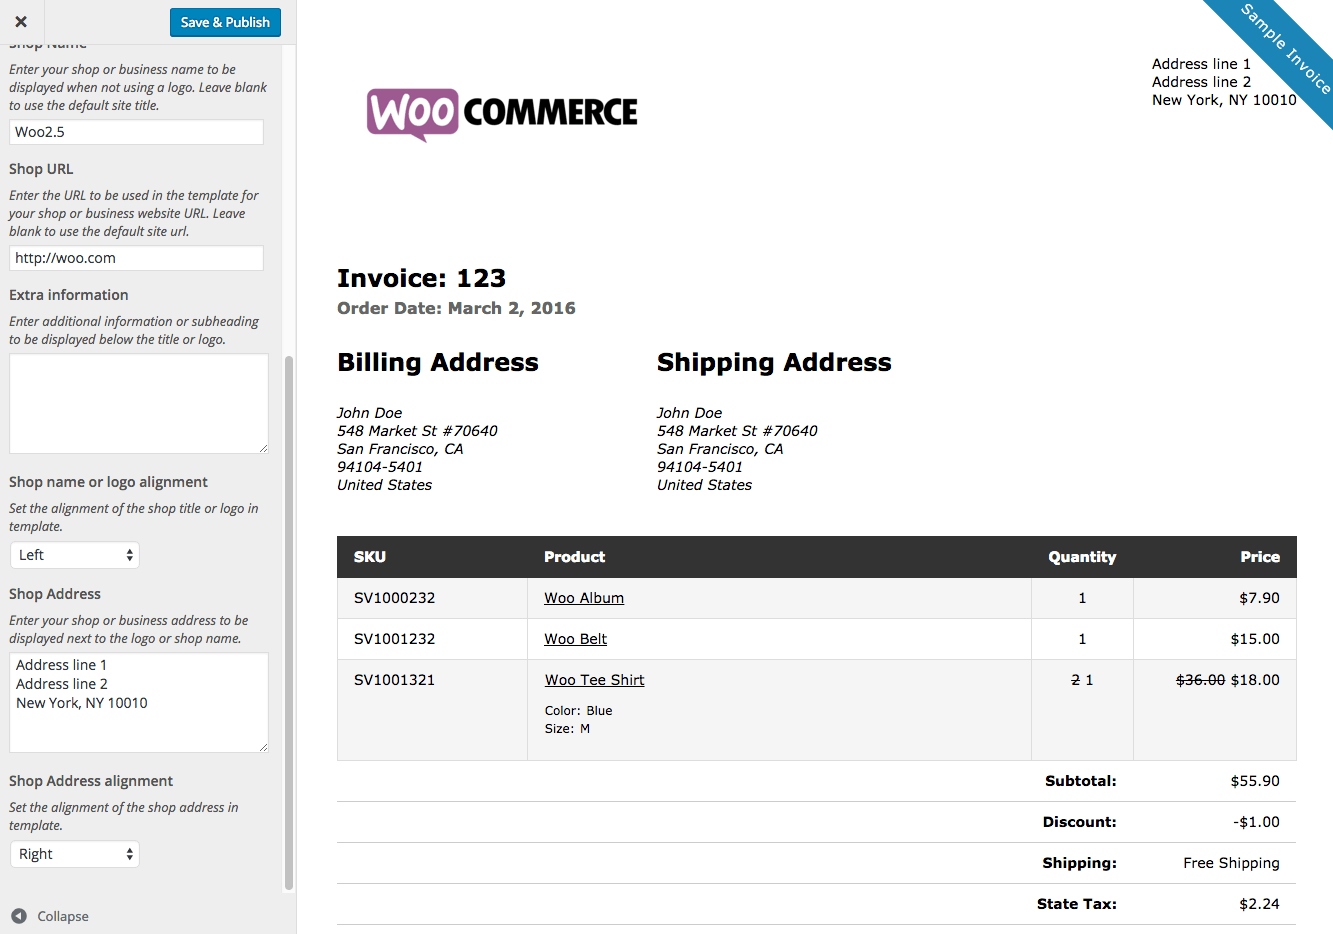 Maidofhonortoastus  Stunning Woocommerce Print Invoices Amp Packing Lists  Woocommerce Docs With Foxy Woocommerce Print Invoices  Packing Lists Customizer With Extraordinary Sbi Life Insurance Online Premium Payment Receipt Also Receipt Spelling In Addition Pdf Receipt Generator And Gmail Receipt As Well As Print Amazon Receipt Additionally What Is Mrv Receipt Number From Docswoocommercecom With Maidofhonortoastus  Foxy Woocommerce Print Invoices Amp Packing Lists  Woocommerce Docs With Extraordinary Woocommerce Print Invoices  Packing Lists Customizer And Stunning Sbi Life Insurance Online Premium Payment Receipt Also Receipt Spelling In Addition Pdf Receipt Generator From Docswoocommercecom